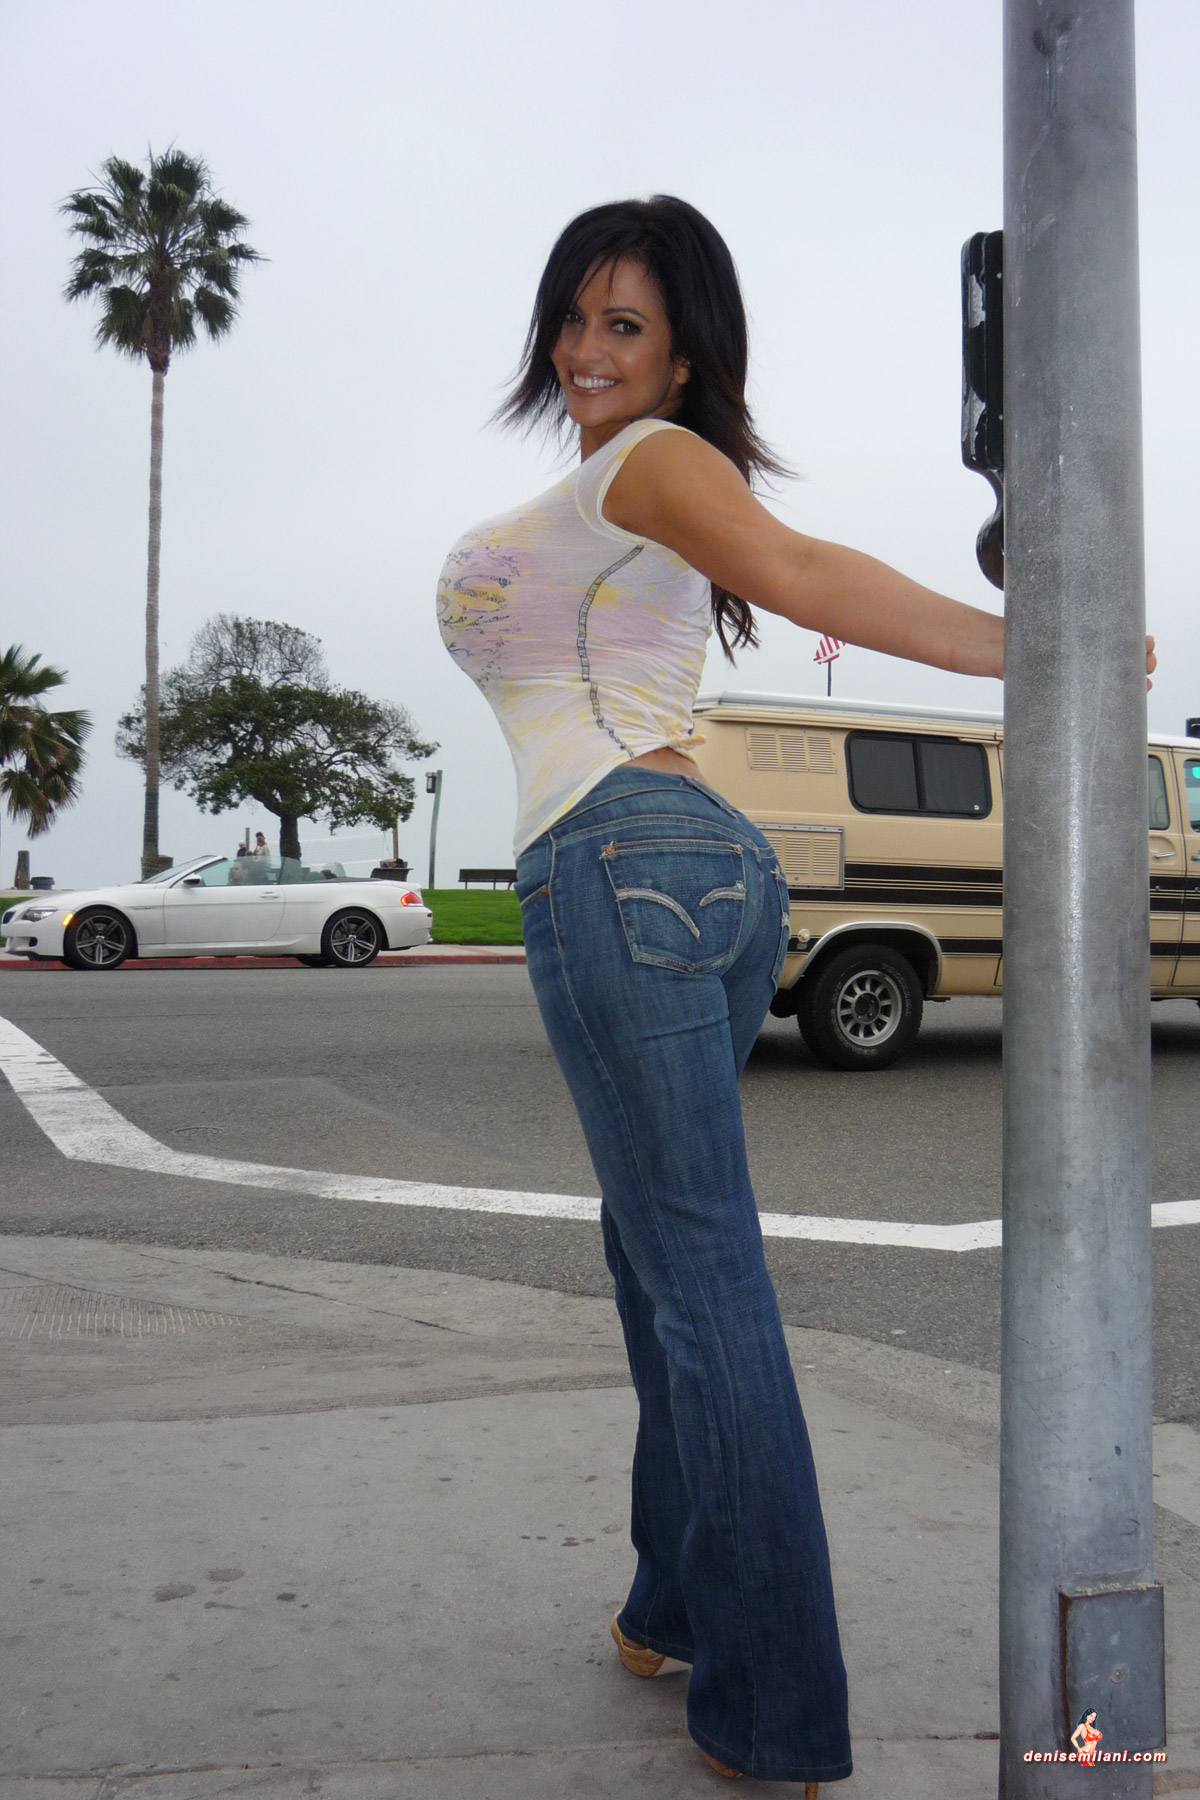 Denise Milani Kills In Jeans | planetdenise